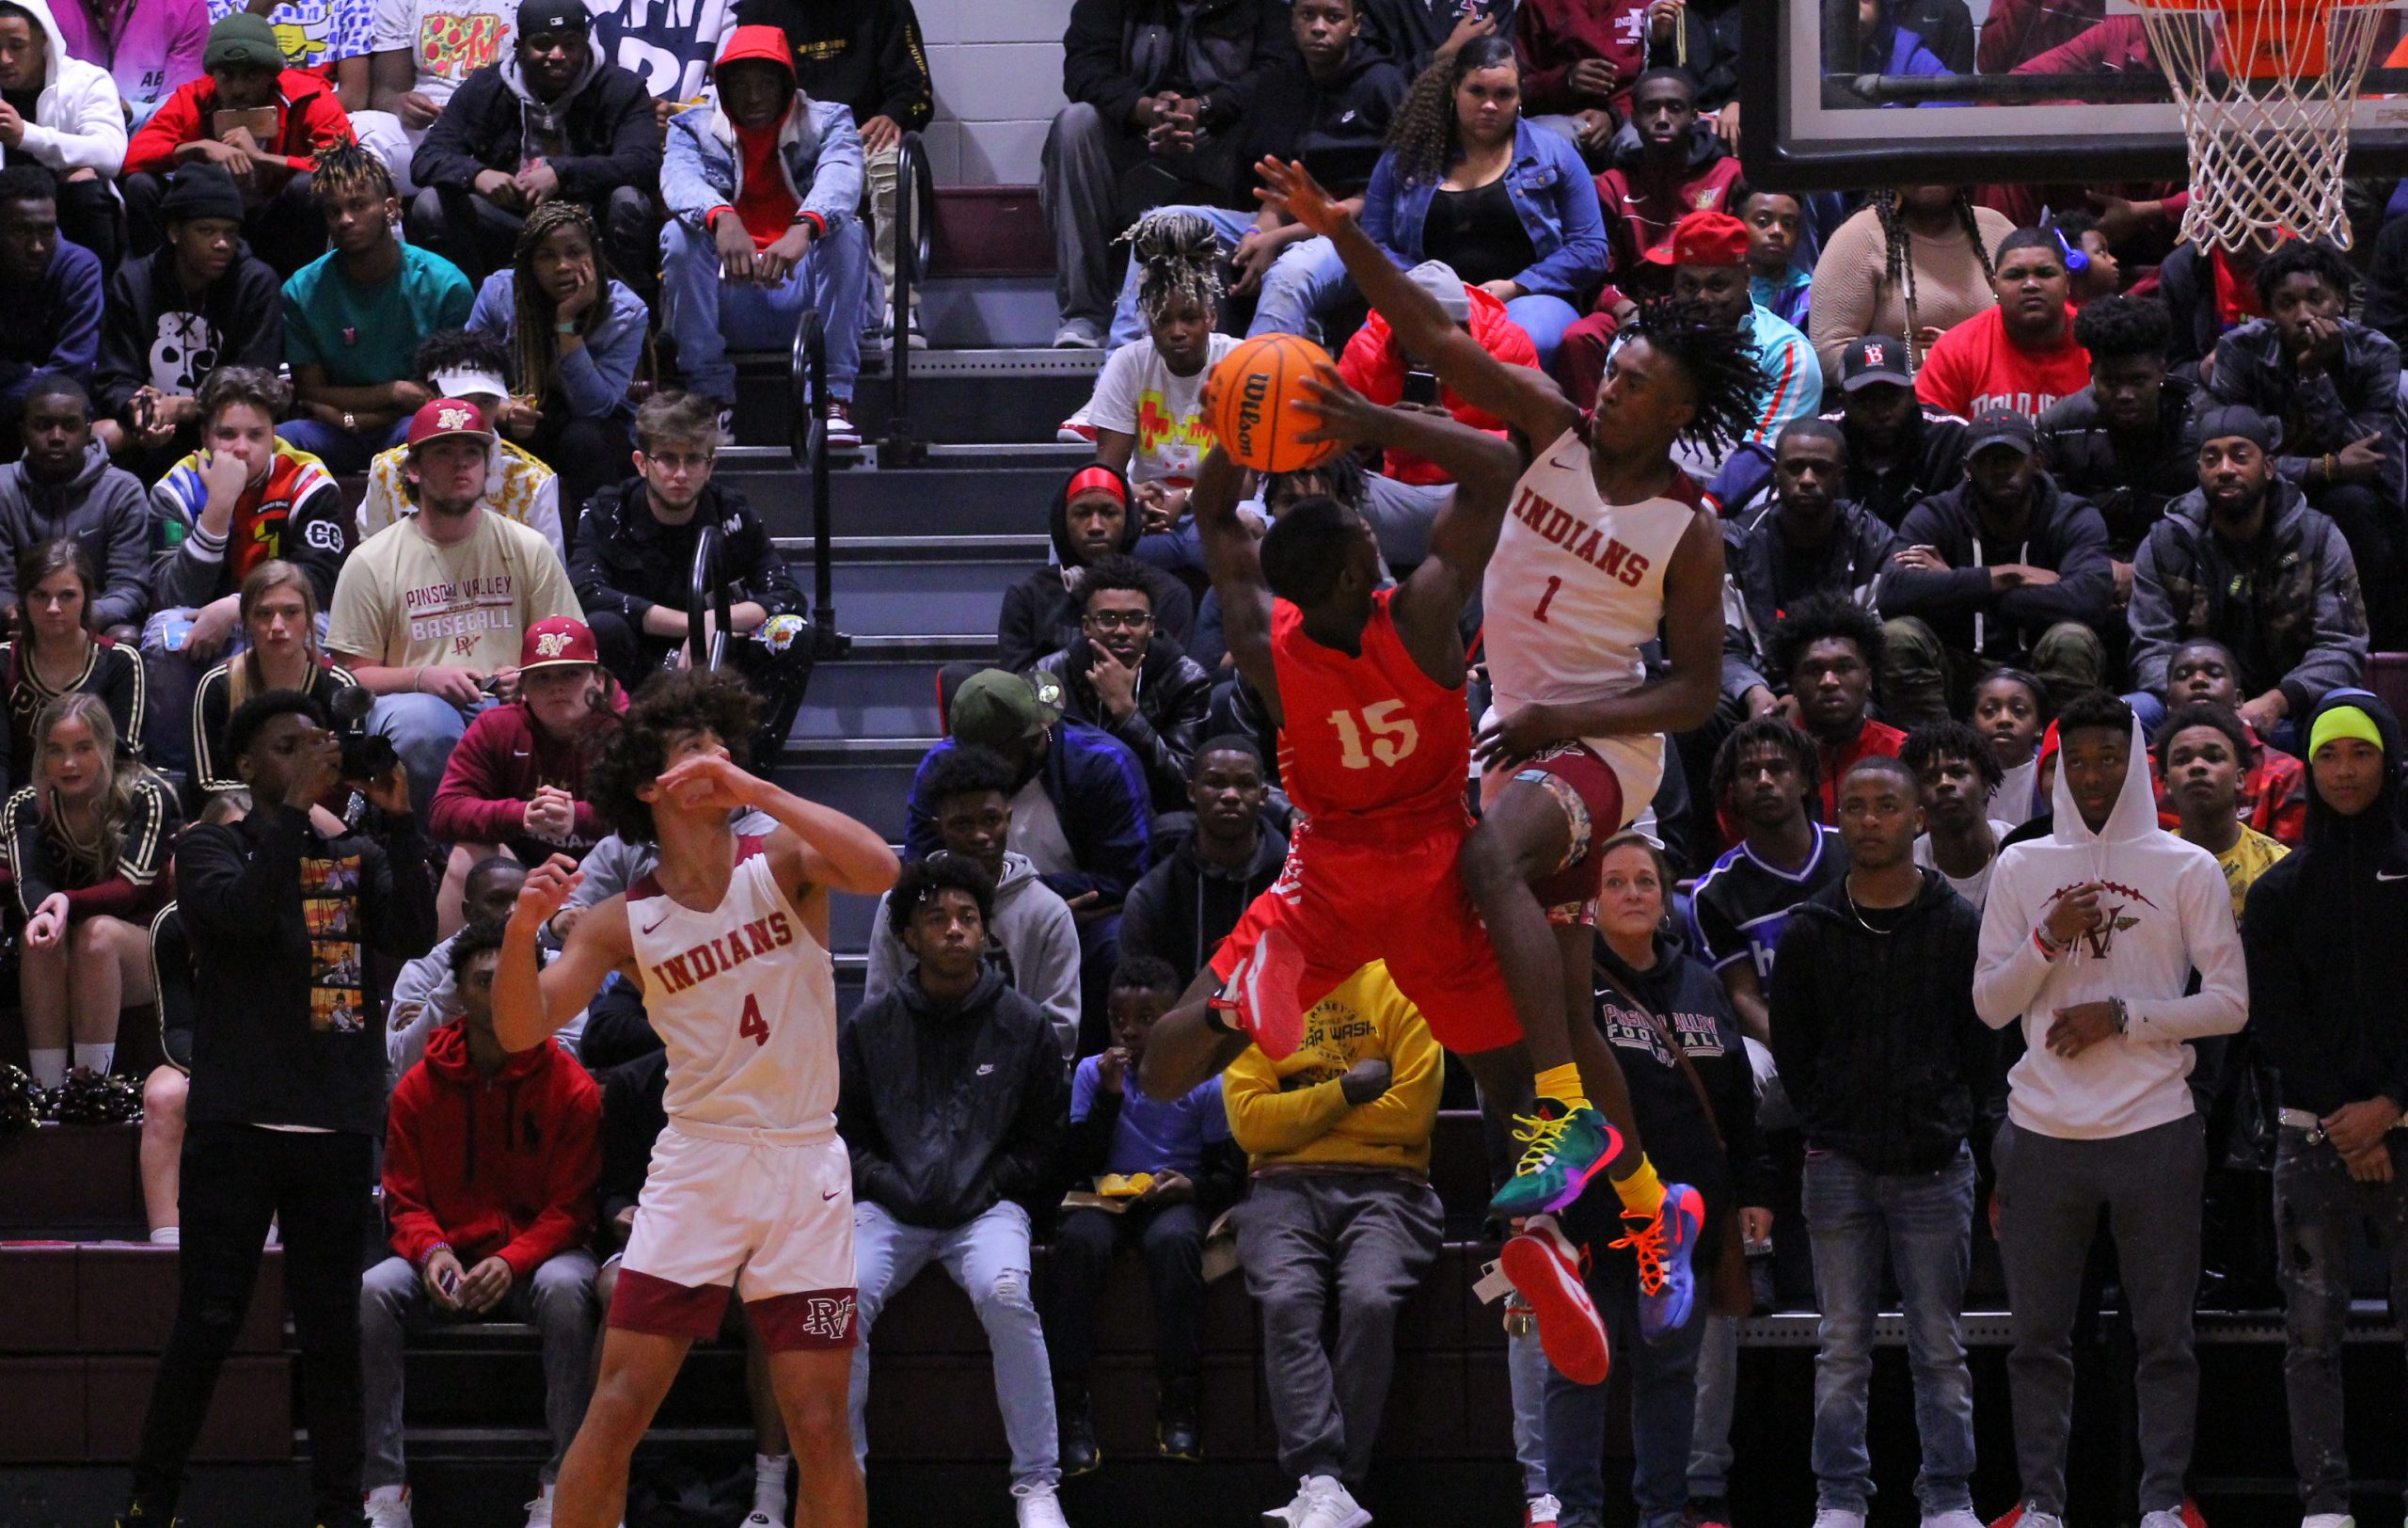 Pinson Valley rallies from 23 points down to stun No. 2 ranked Lee behind Wood's career-high 52 points